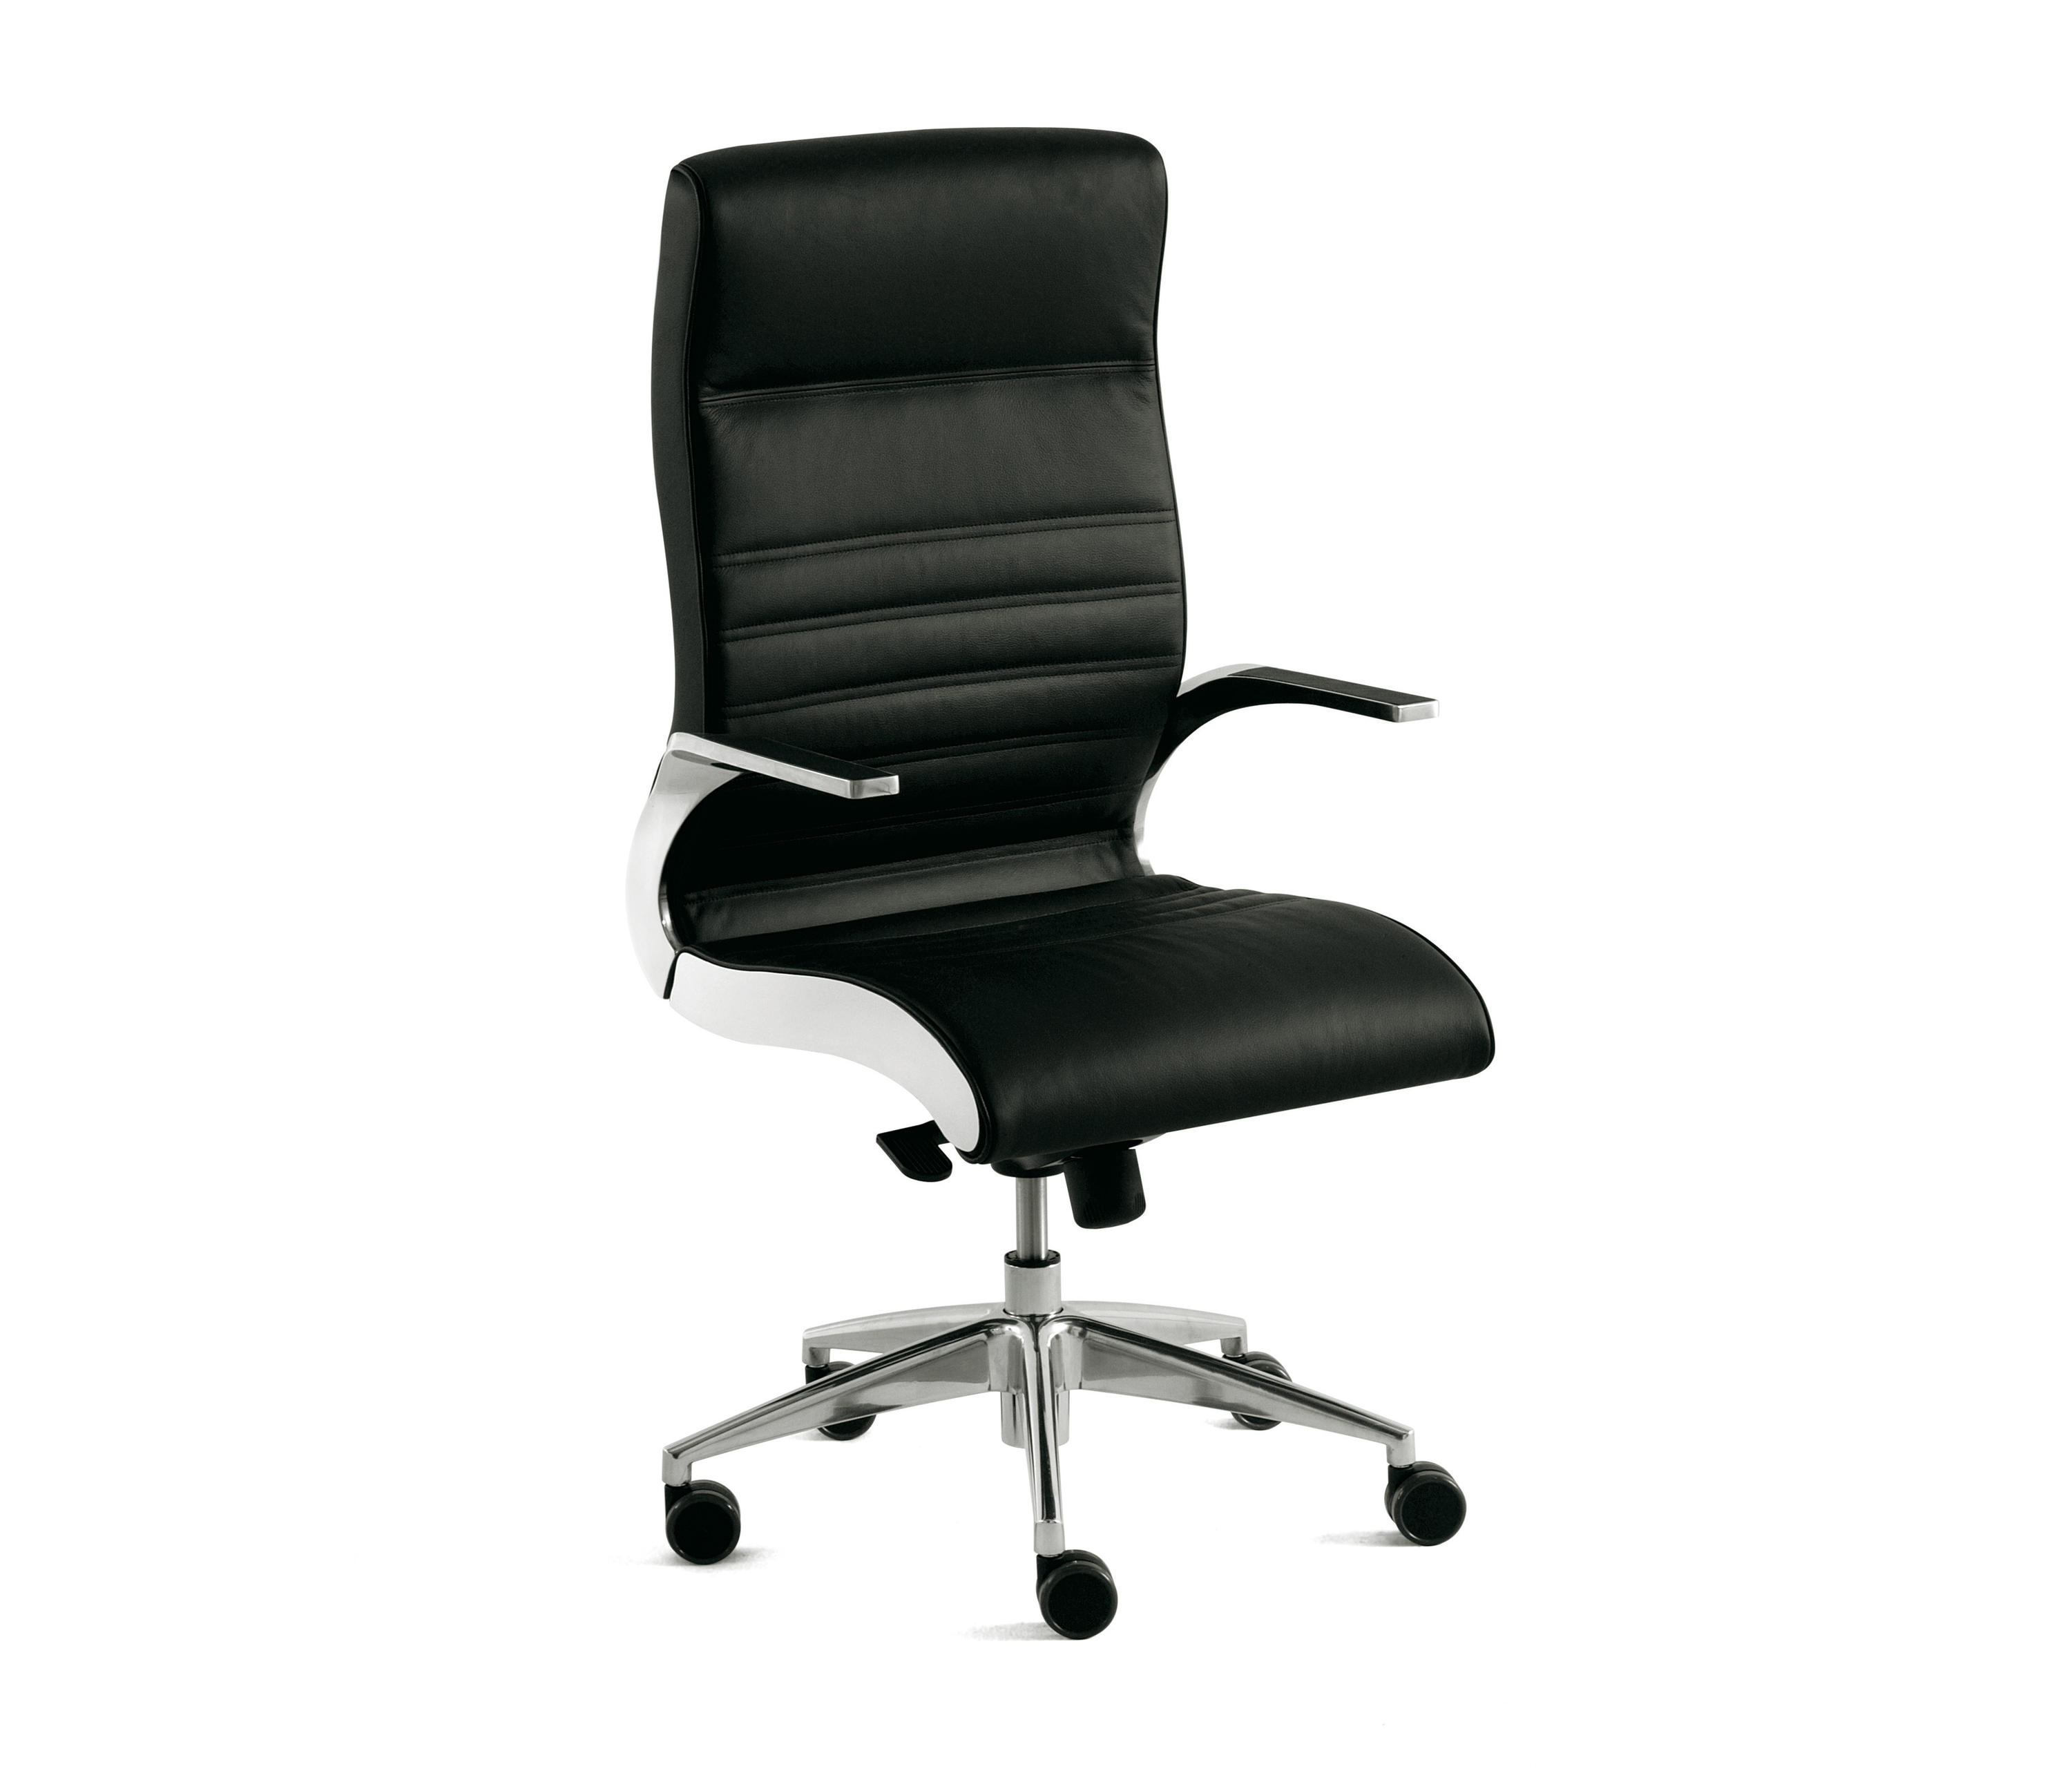 SYNCHRONY 201 Executive chairs from Luxy